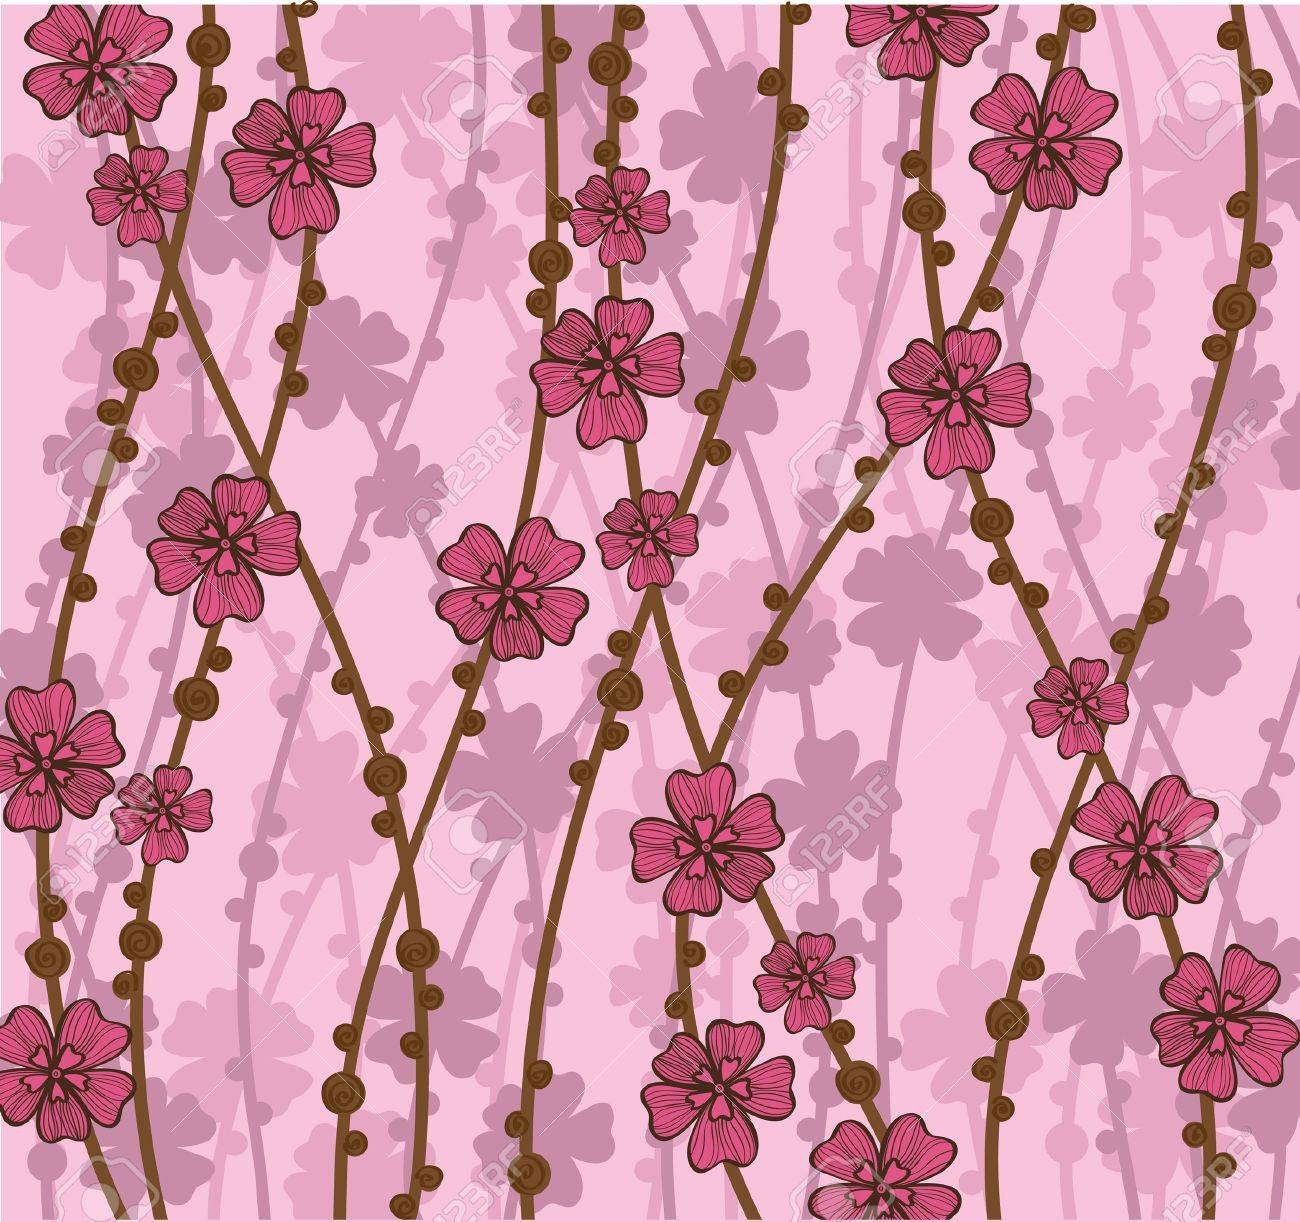 Pink Wallpaper With Beautiful Abstract Japanese Flowers Royalty